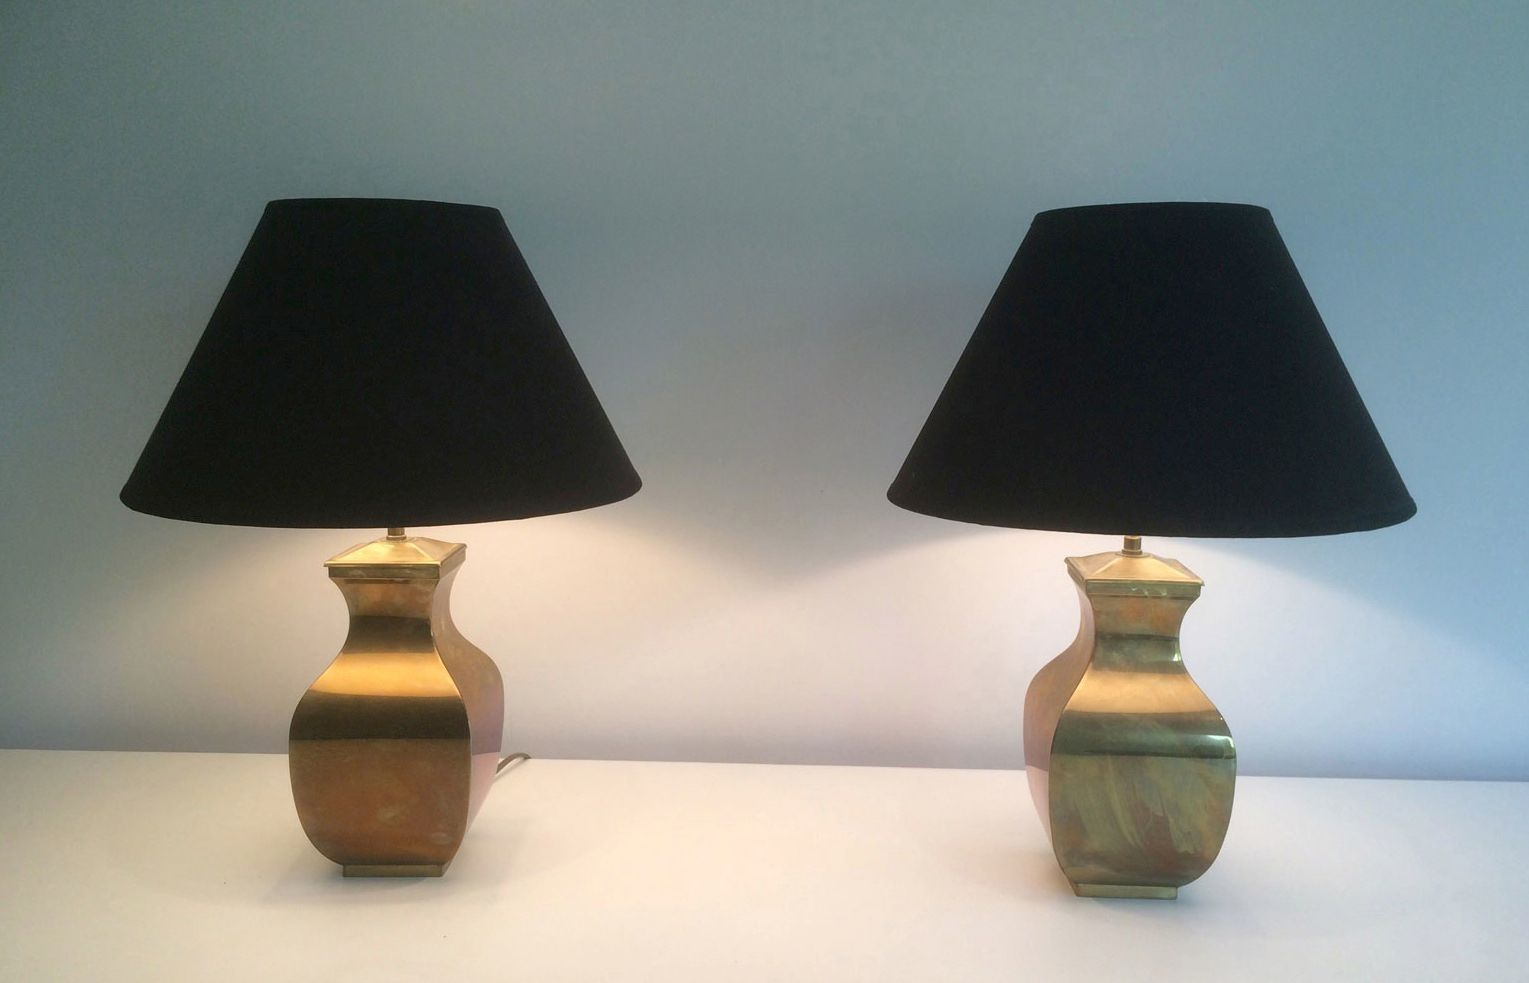 vintage brass table lamps 1970s set of 2 for sale at pamono. Black Bedroom Furniture Sets. Home Design Ideas